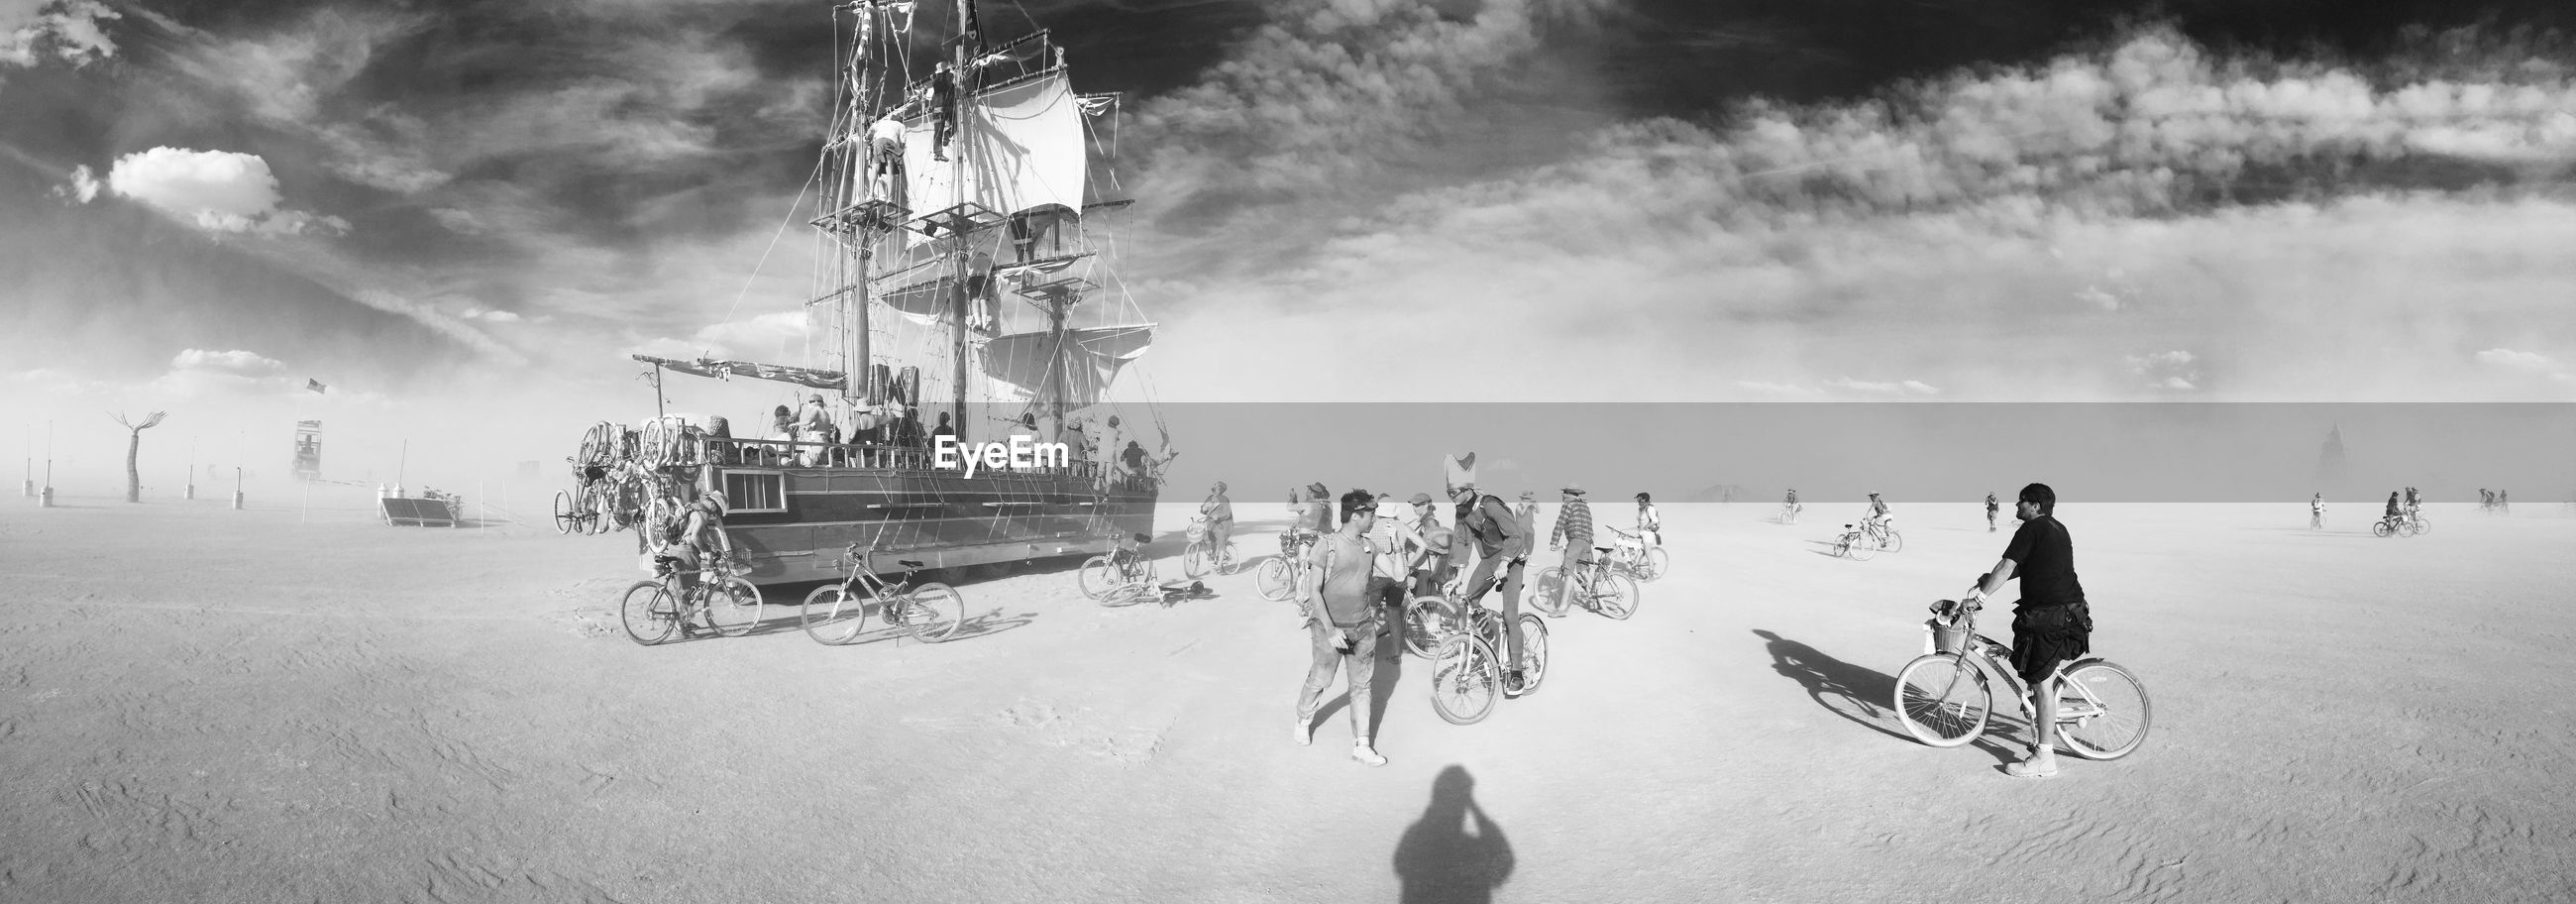 lifestyles, leisure activity, men, sky, person, sitting, beach, water, enjoyment, outdoors, day, chair, cloud - sky, relaxation, vacations, casual clothing, sunlight